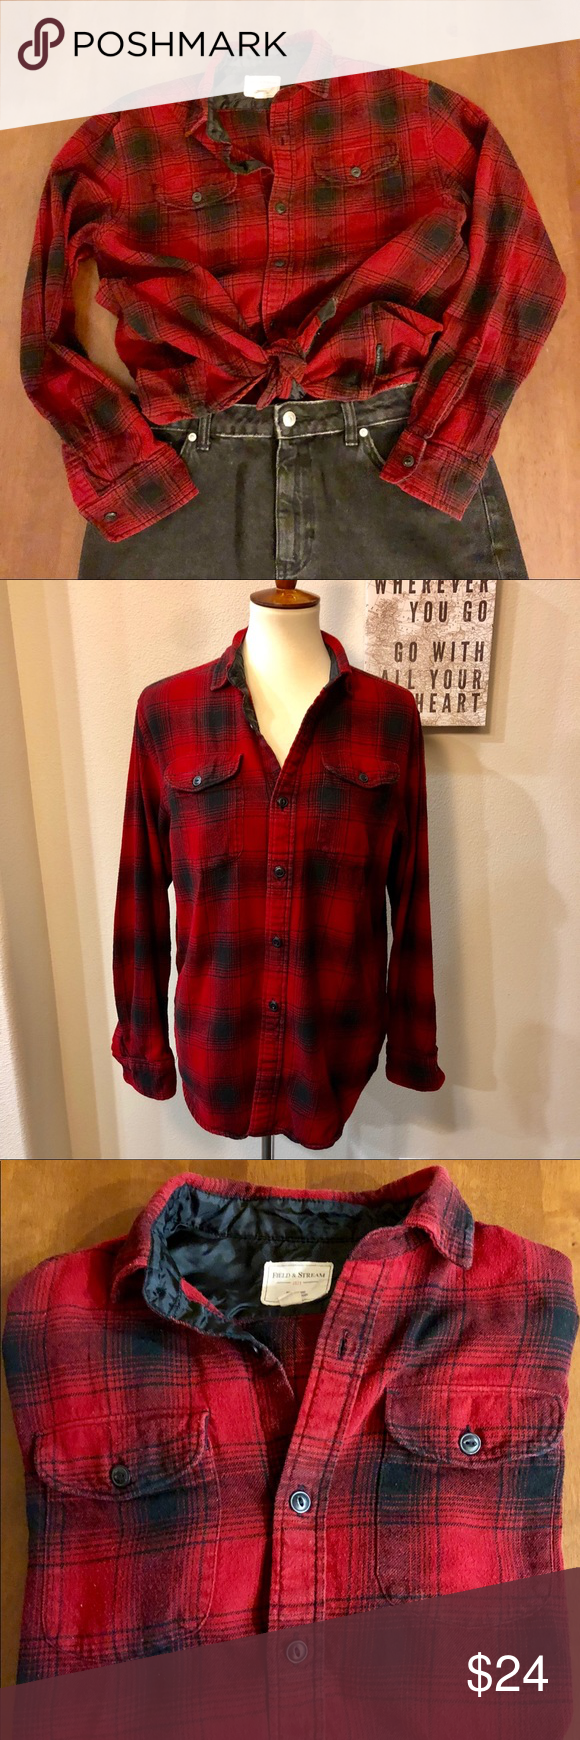 4768ffa70f3a4 Plaid Red and Black Flannel Women s Medium Great holiday flannel in  excellent condition. Warm